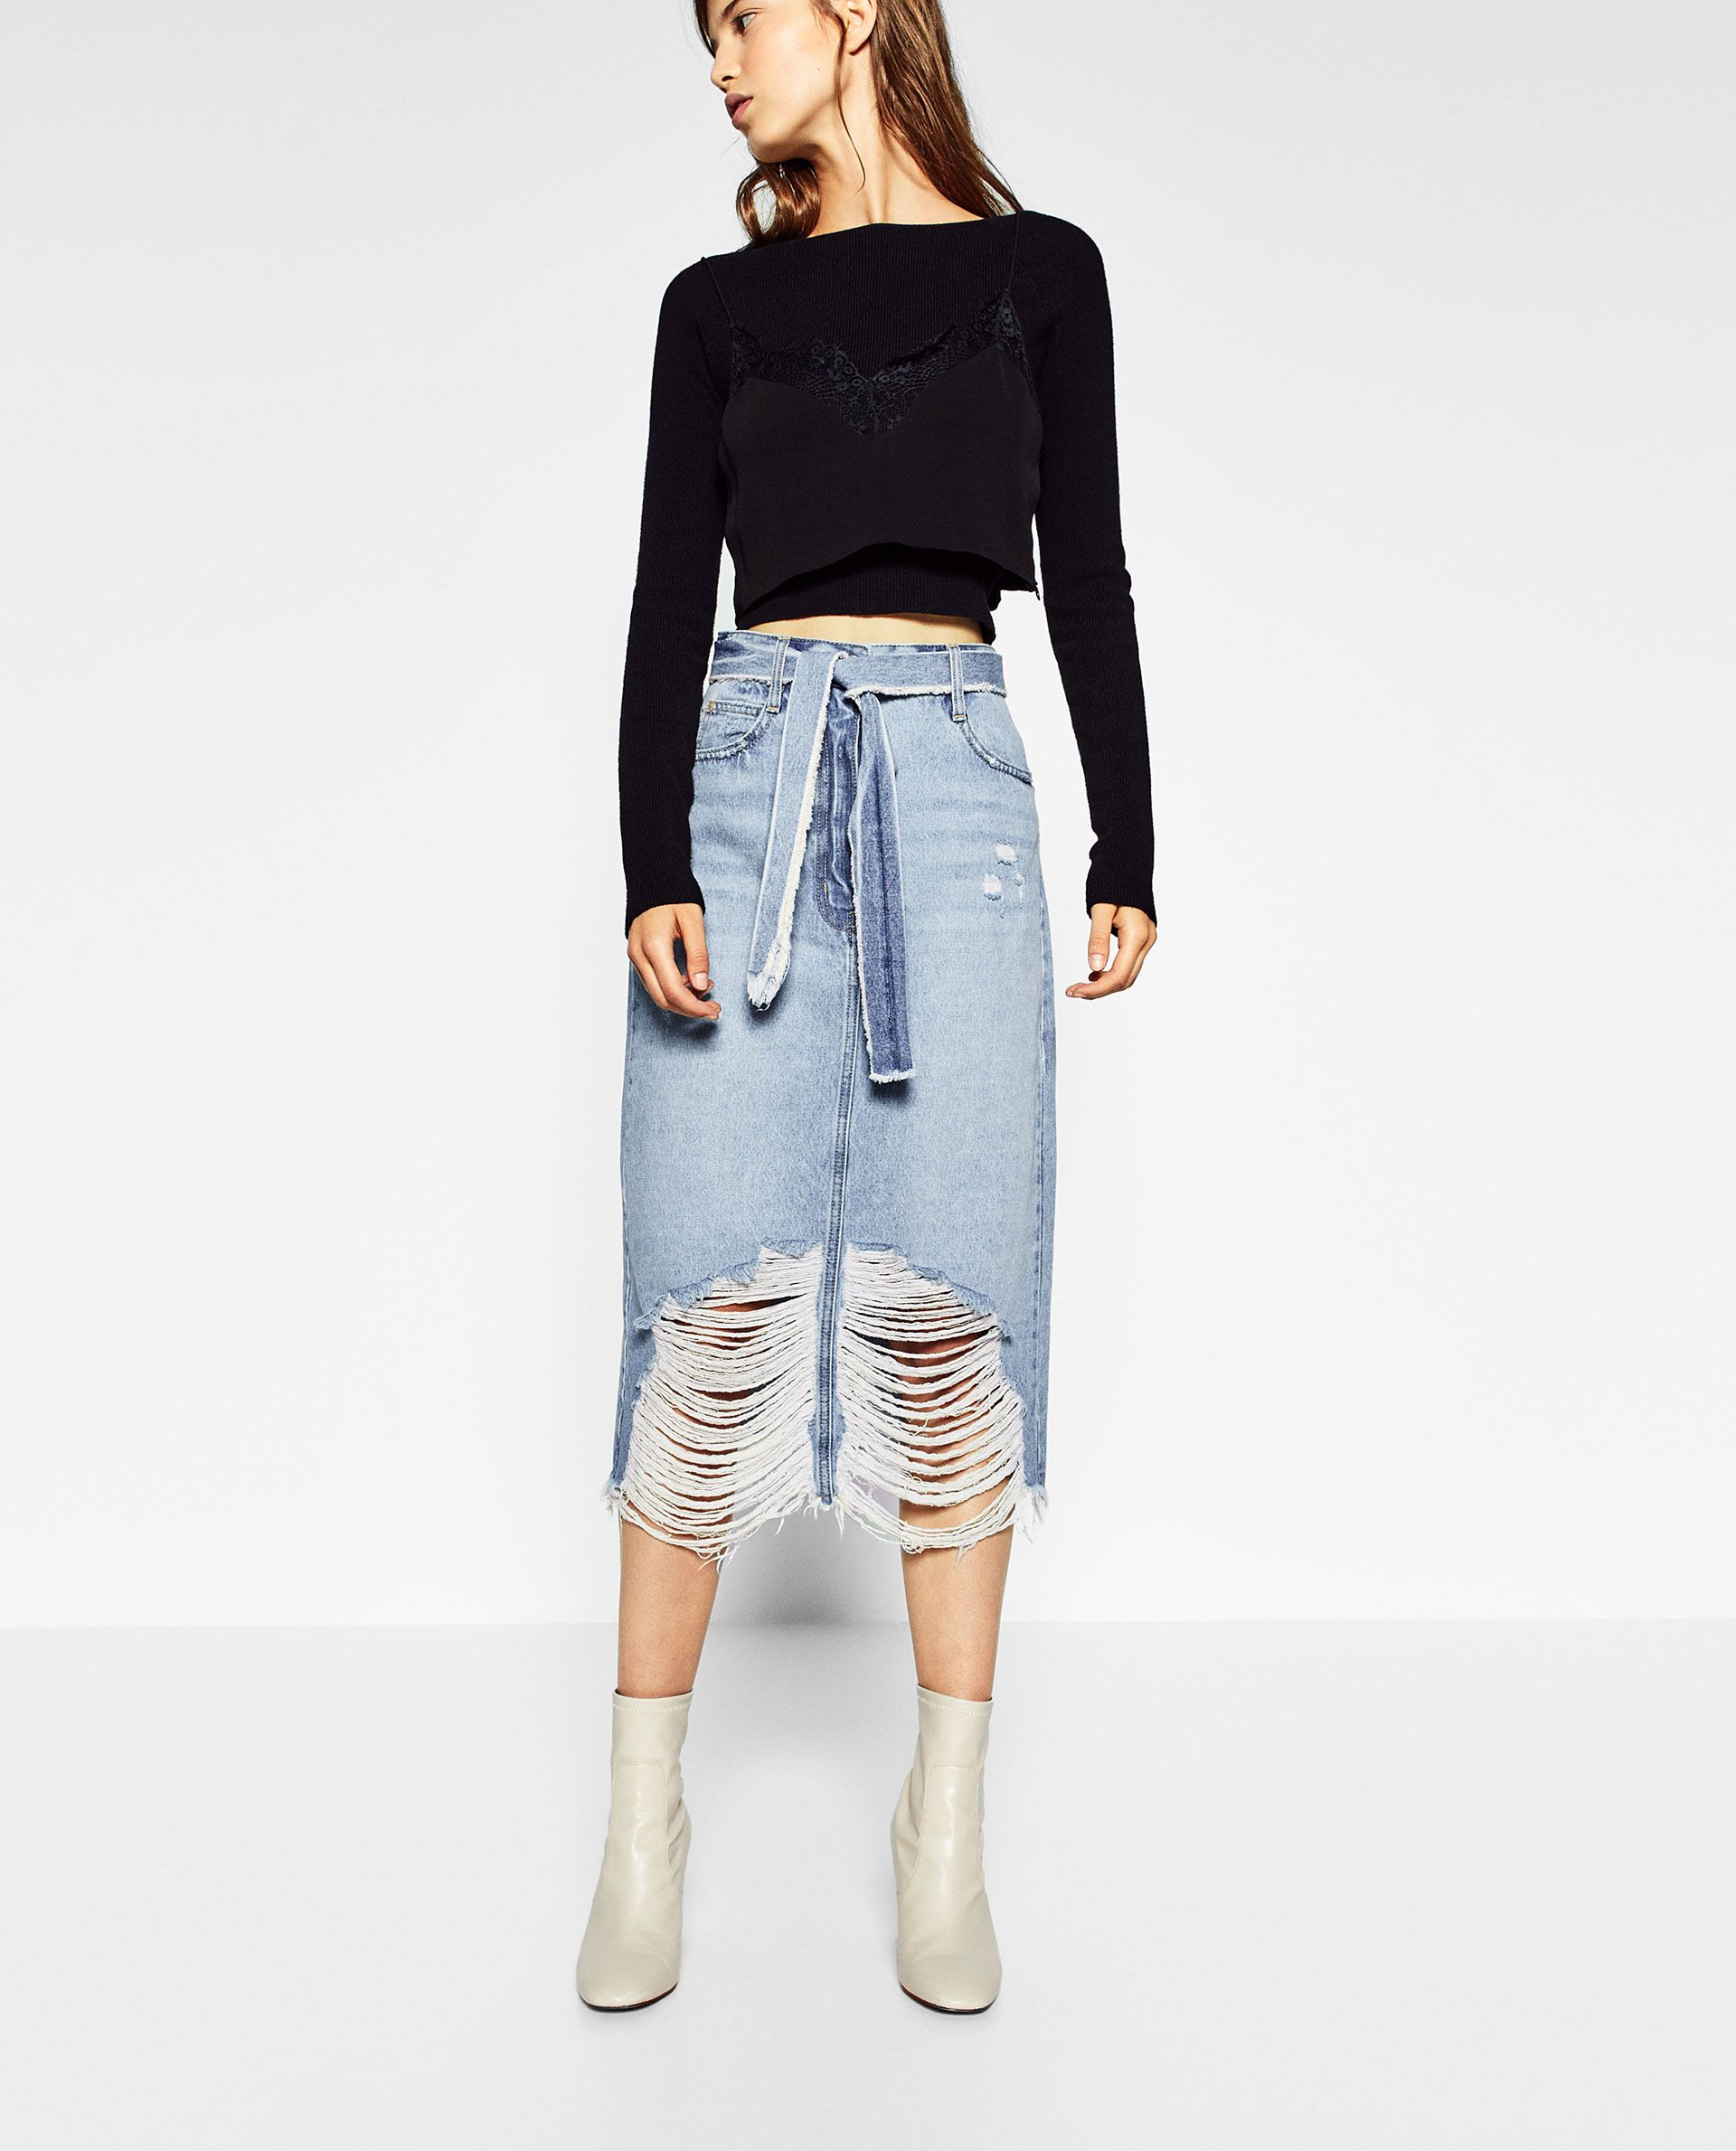 a13d97a38d Image 2 of RIPPED MIDI DENIM SKIRT from Zara